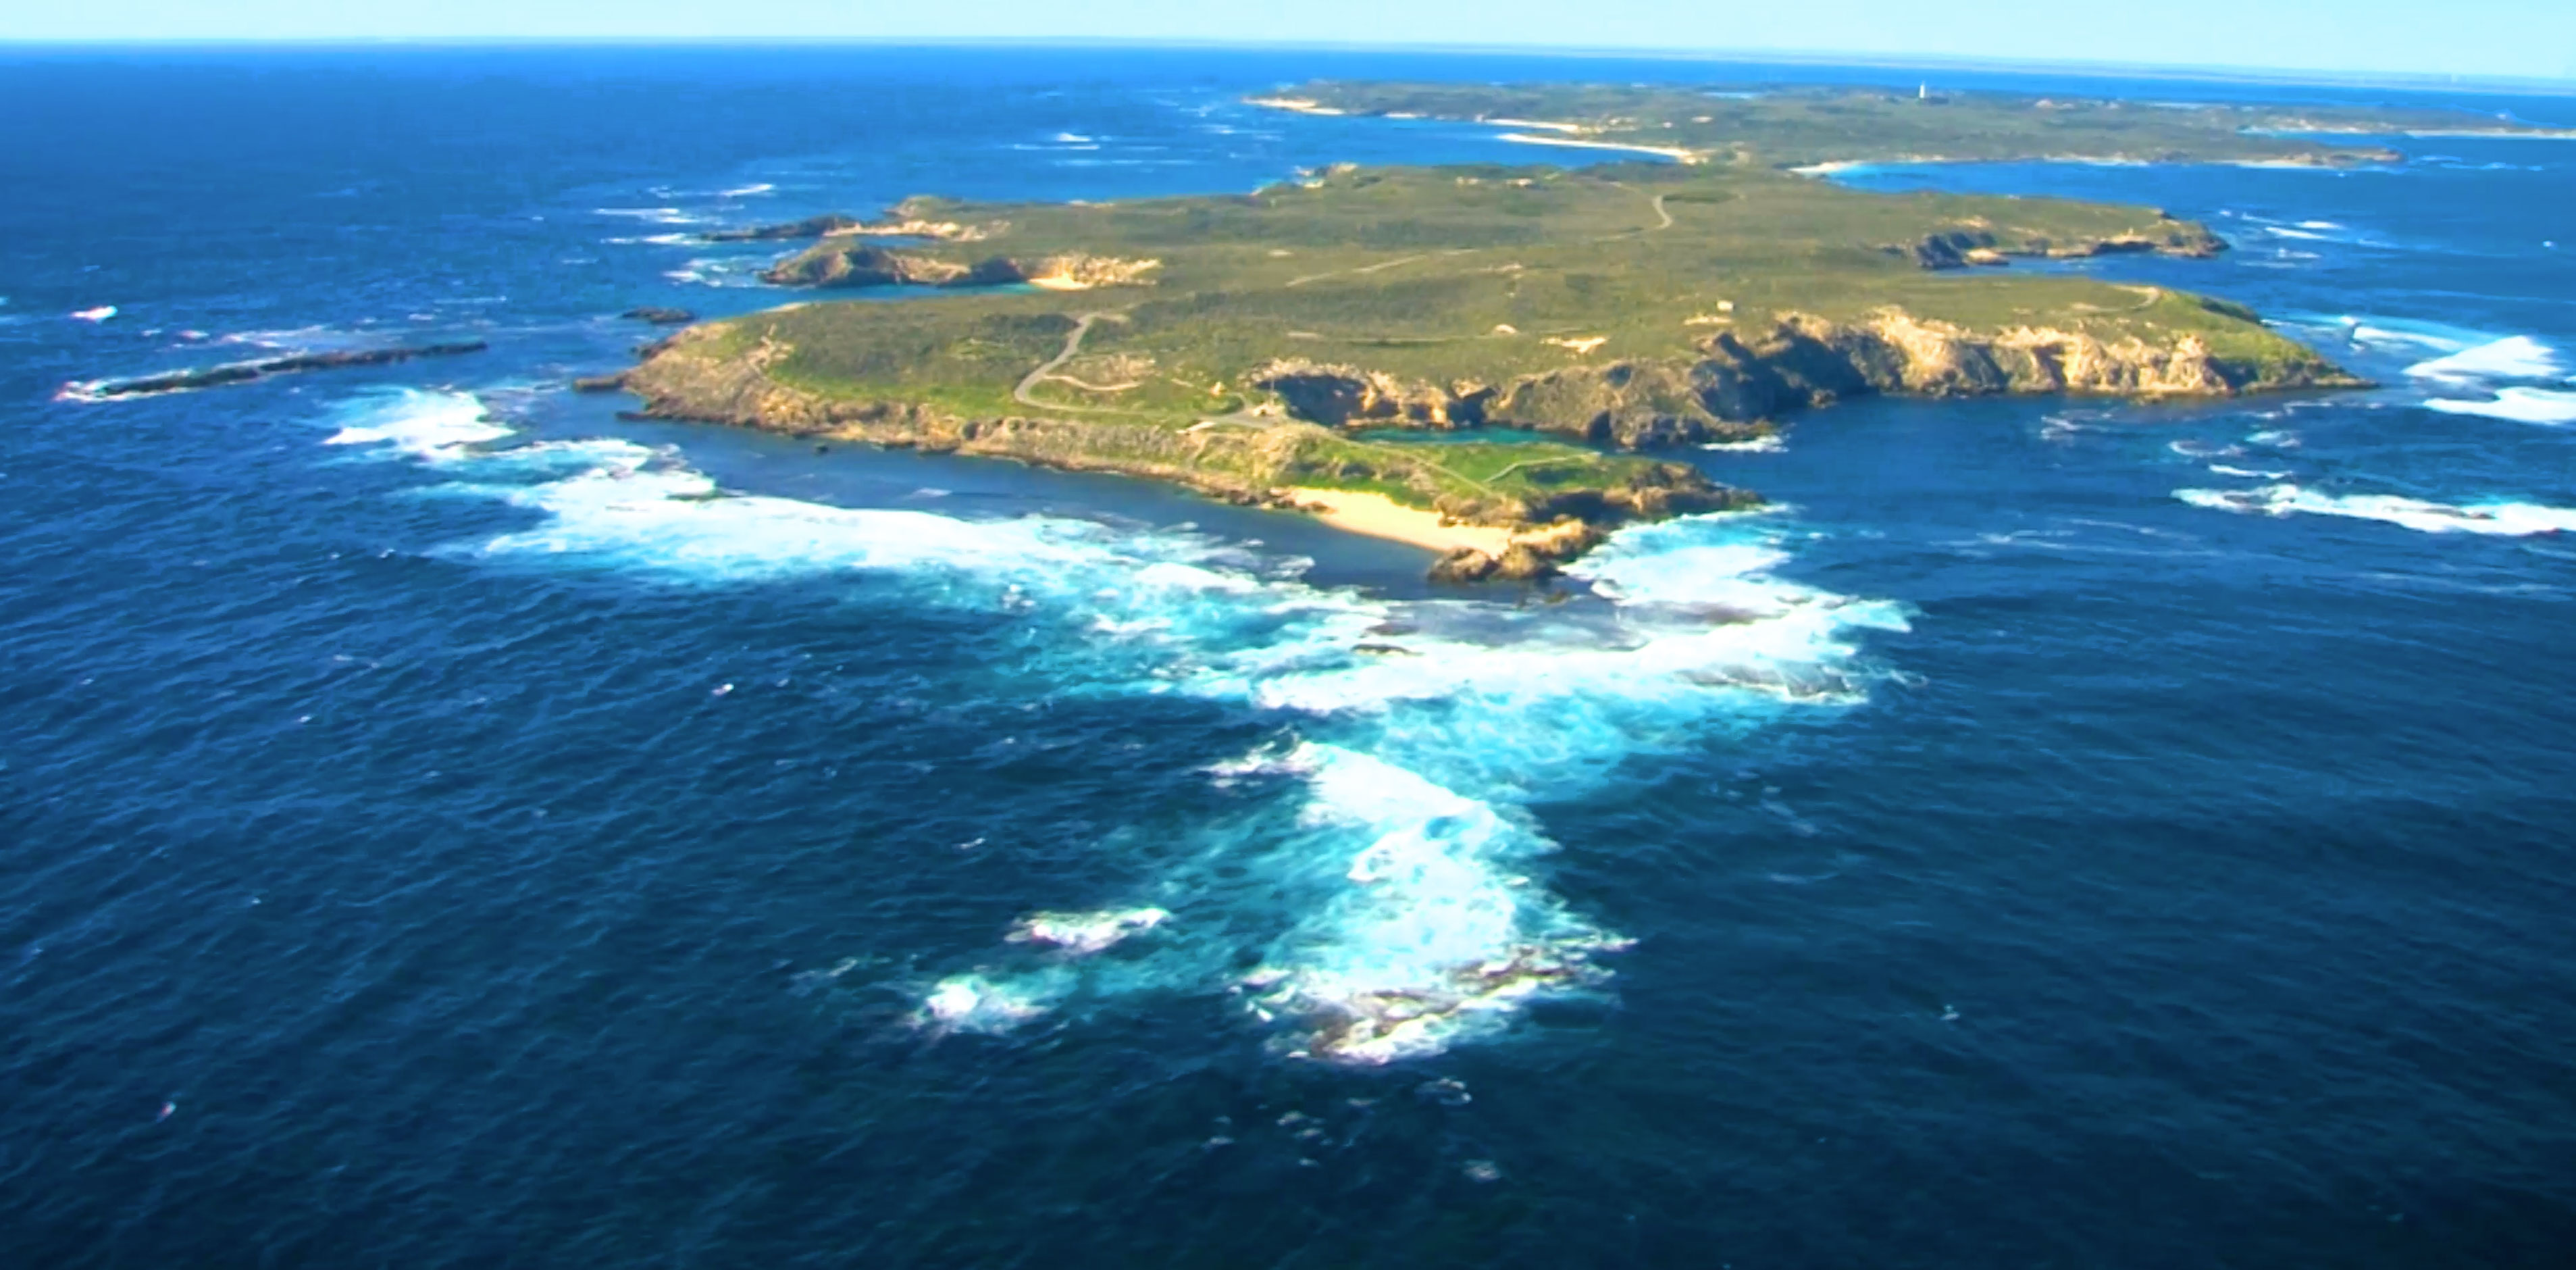 West End of Rottnest Island